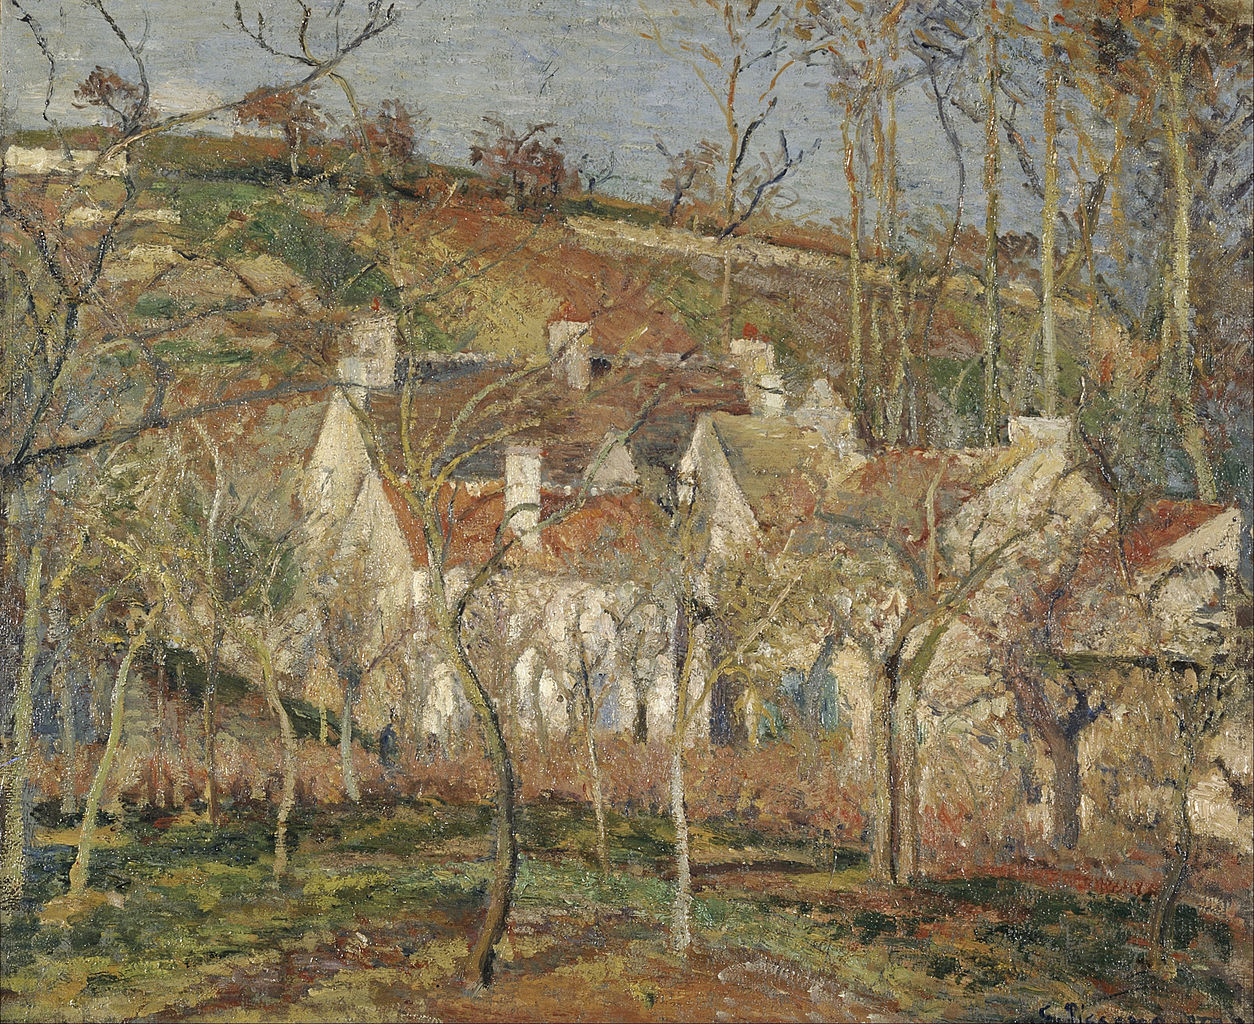 Camille Pissarro, Red Roofs, corner of a village, winter, 1877 | © Musée d'Orsay/WikiCommons